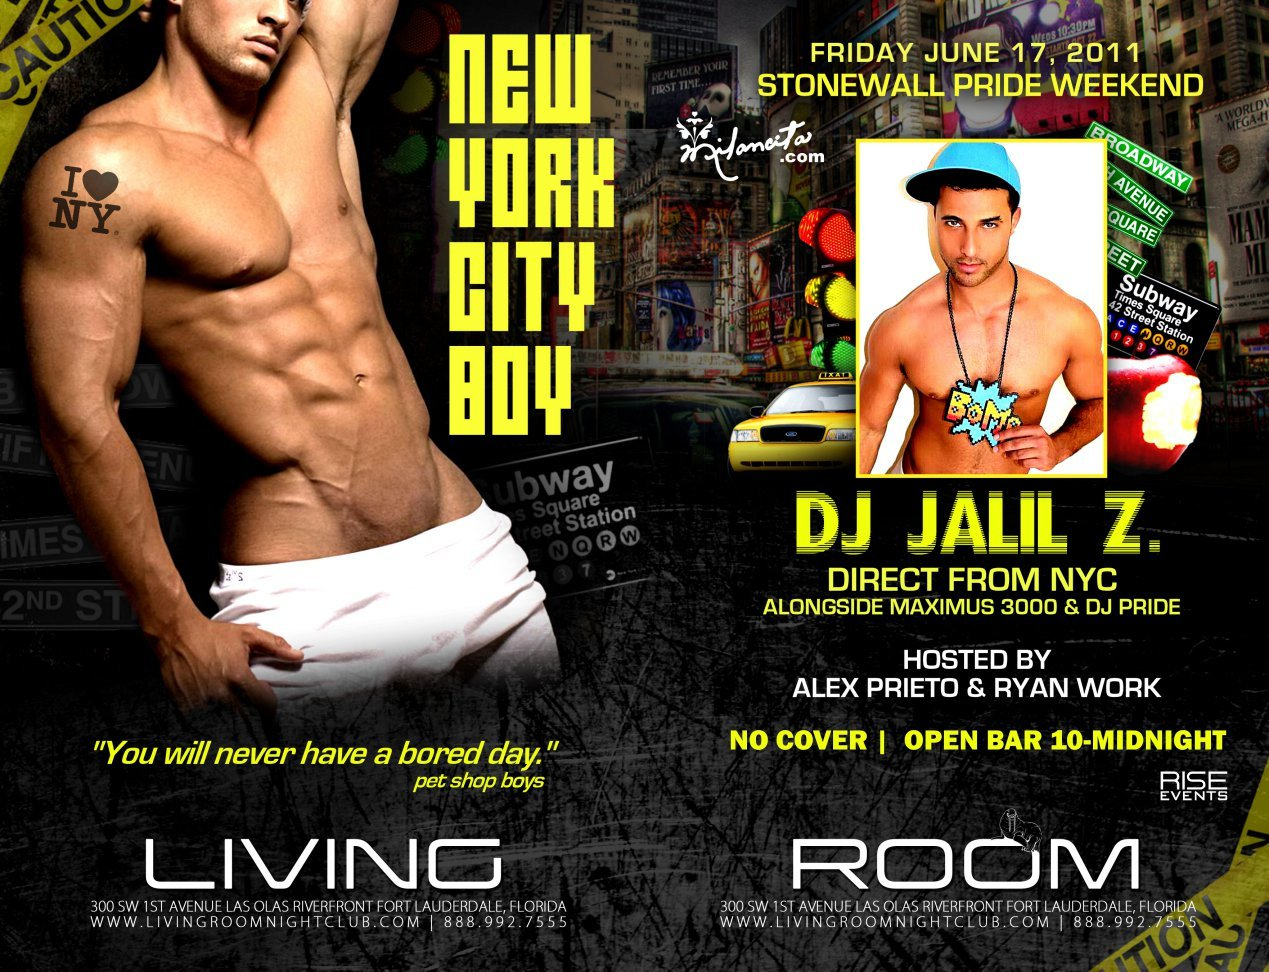 EVENTS: DJ/Producer Maximus 3000 U201cLiquid Fridays Presents DJ Jalil Zu201d @ Living  Room Nightclub Fort Laud, FL 6 18 11 Part 27